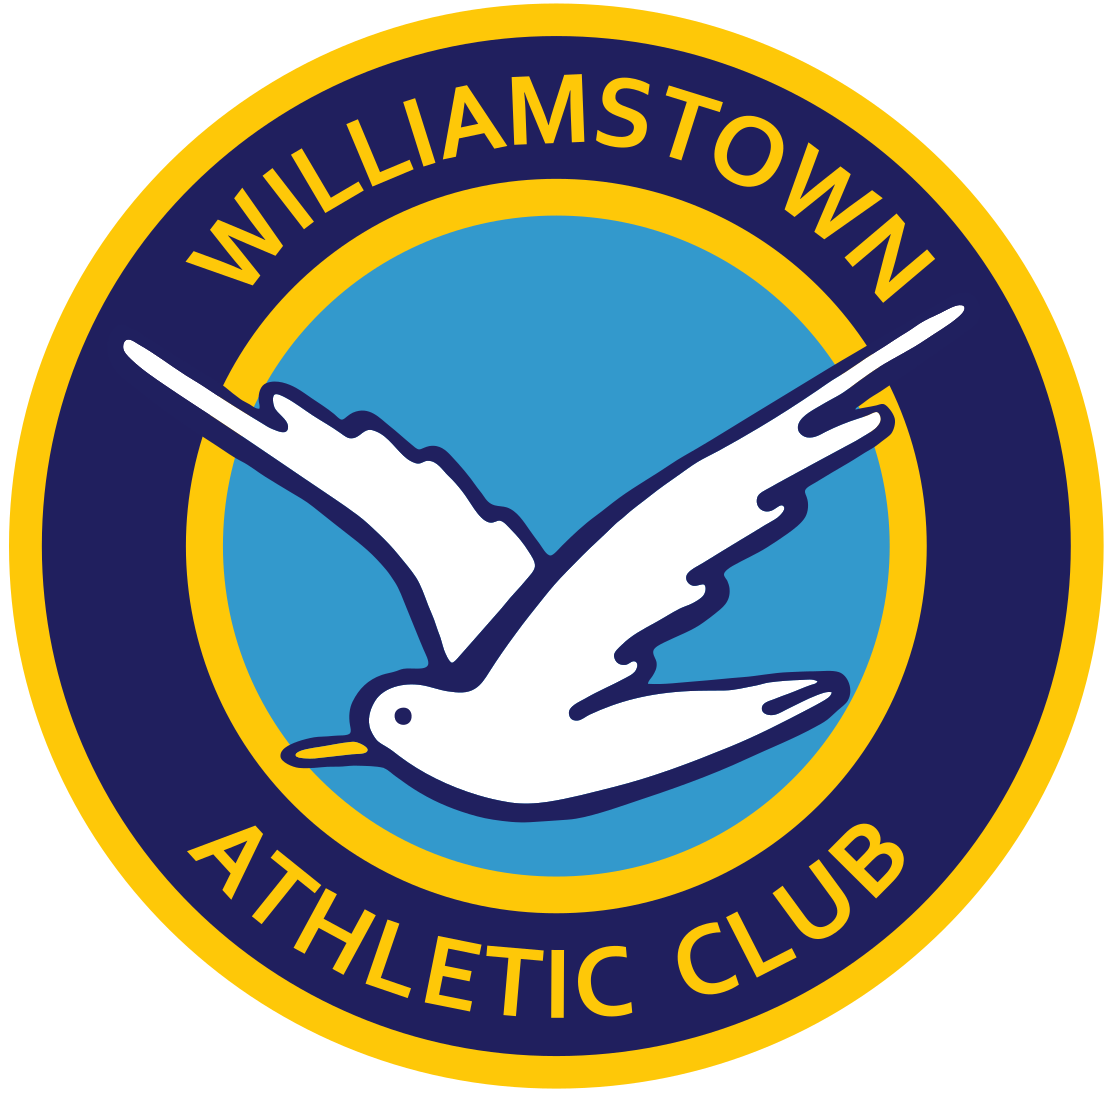 Williamstown Athletic Club